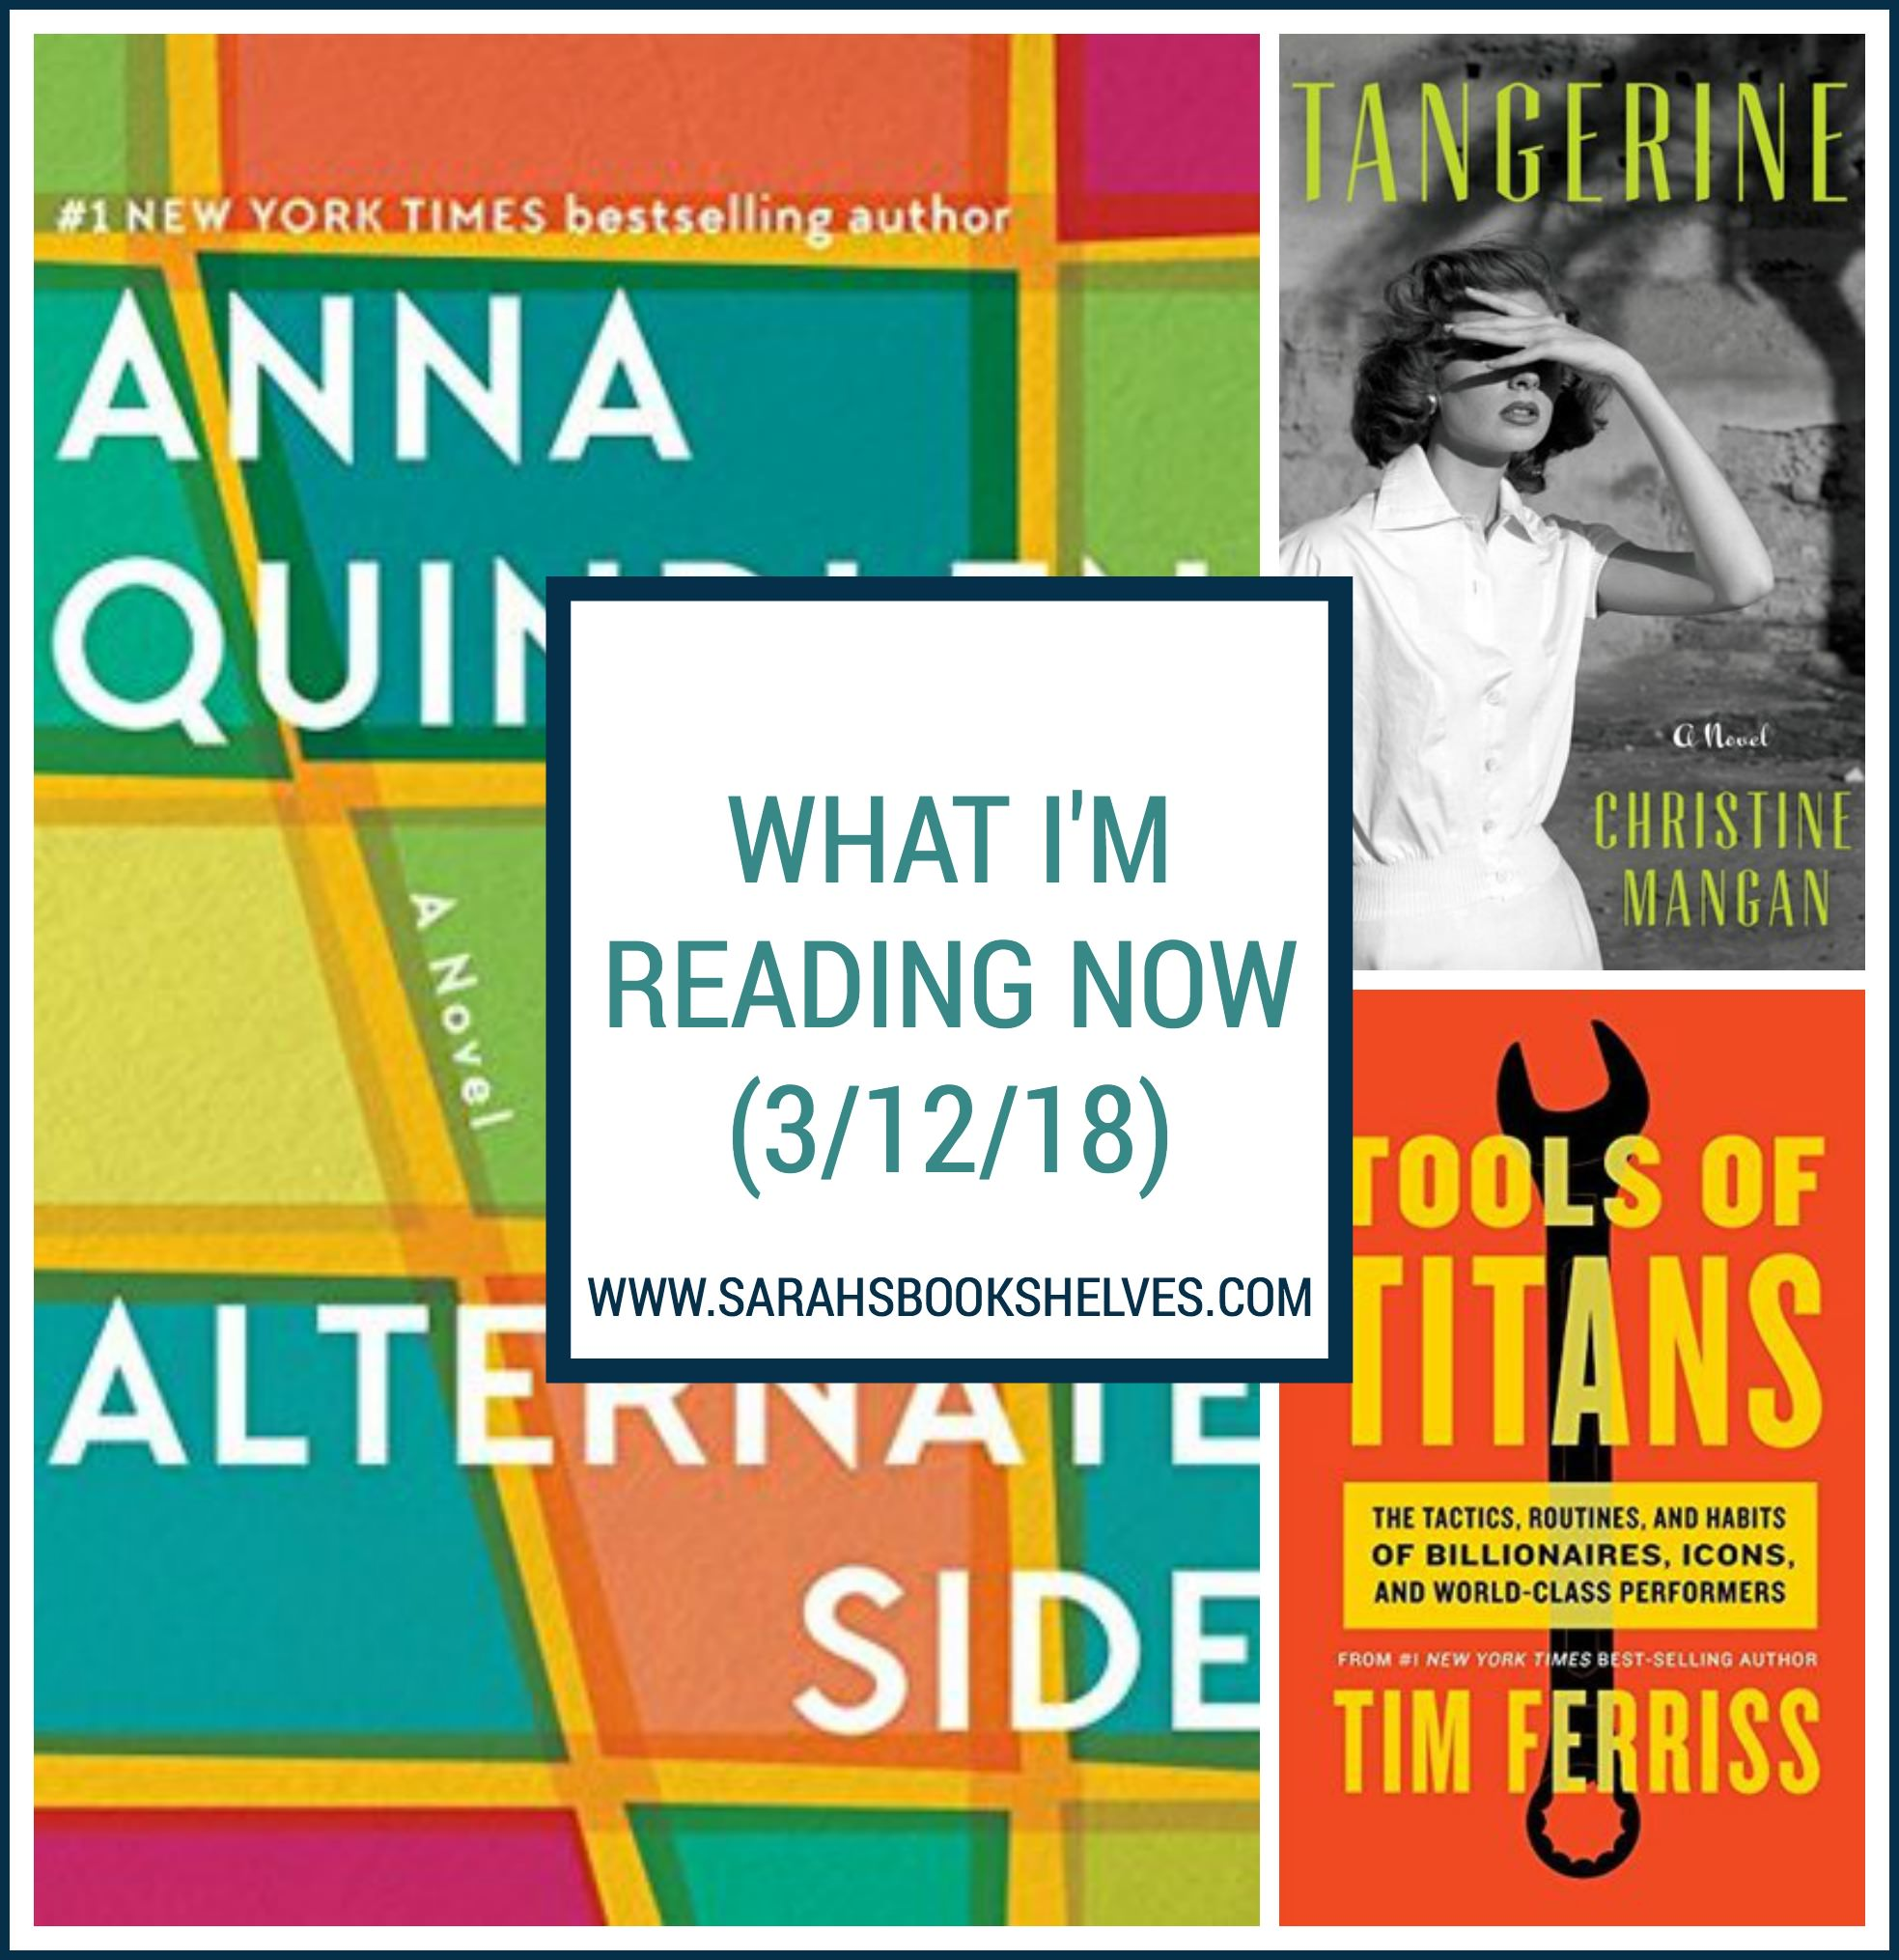 What I'm Reading Now (3/12/18): I just finished the upcoming release Tangerine and am almost finished with Anna Quindlen's latest, Alternate Side. I'm slowly reading Tools of Titans by Tim Ferris and am sharing my favorite tip each week! #reading #book #bookish #bookworms #booklovers